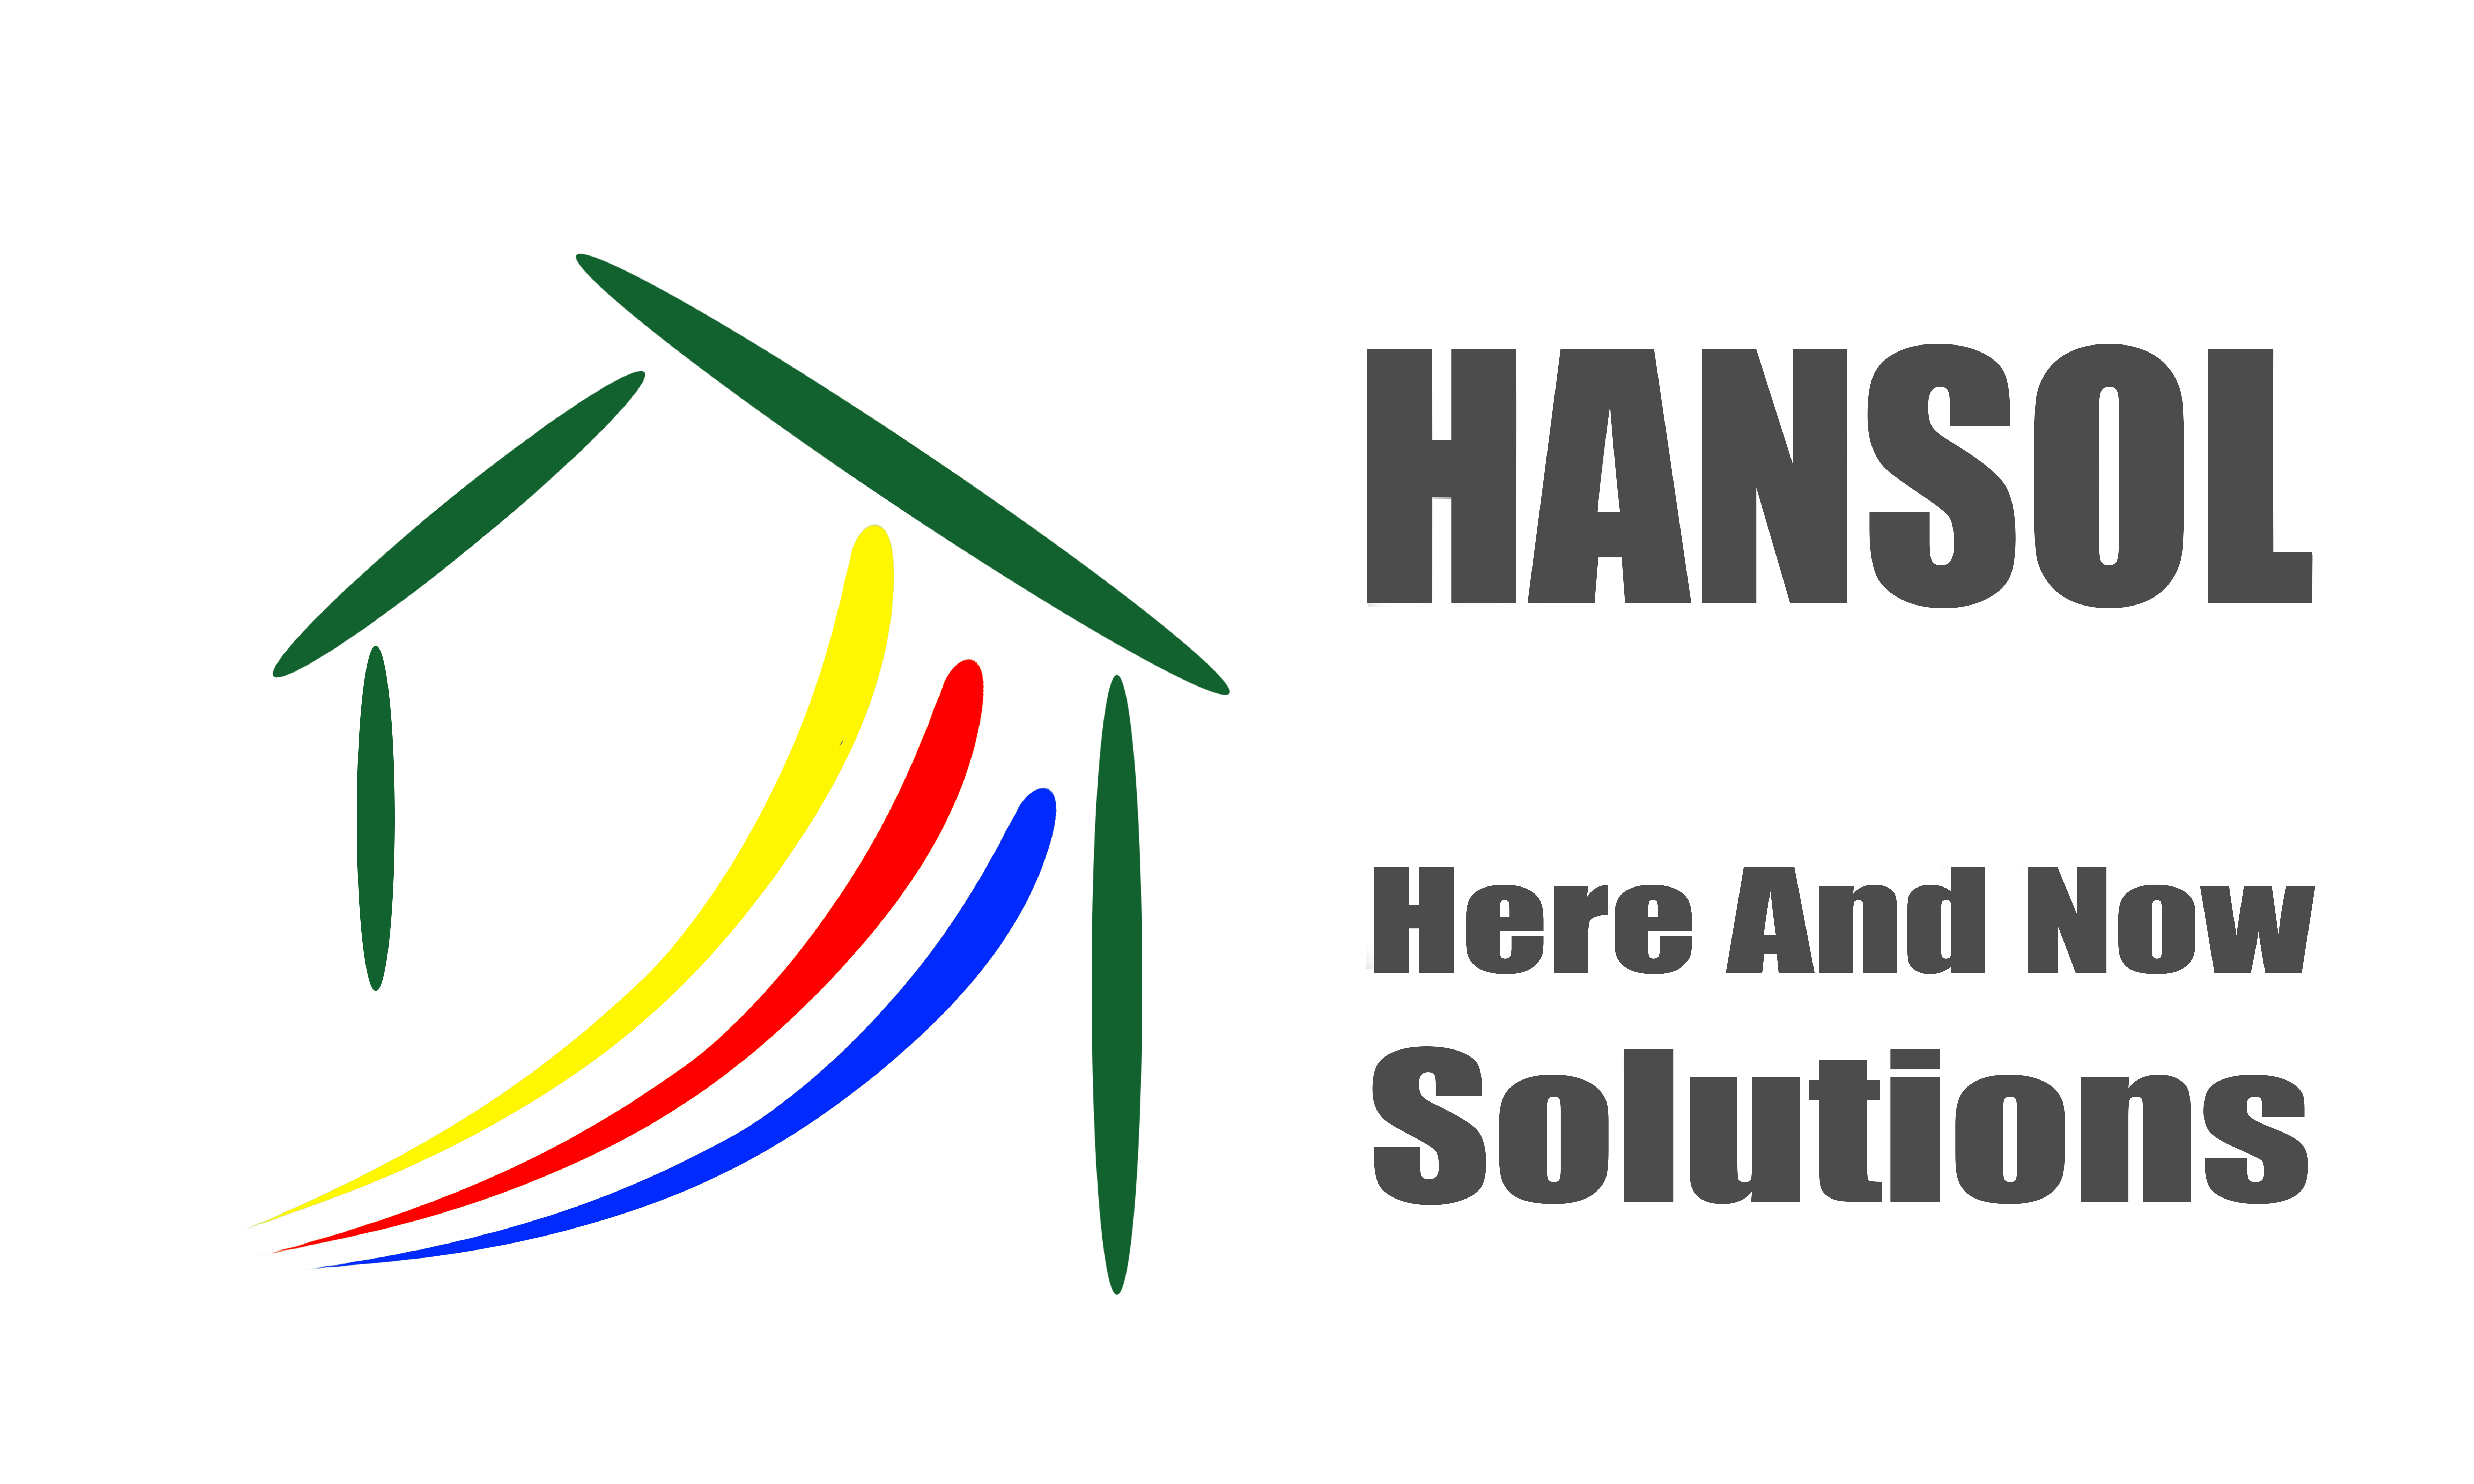 HANSOL - HERE AND NOW SOLUTIONS